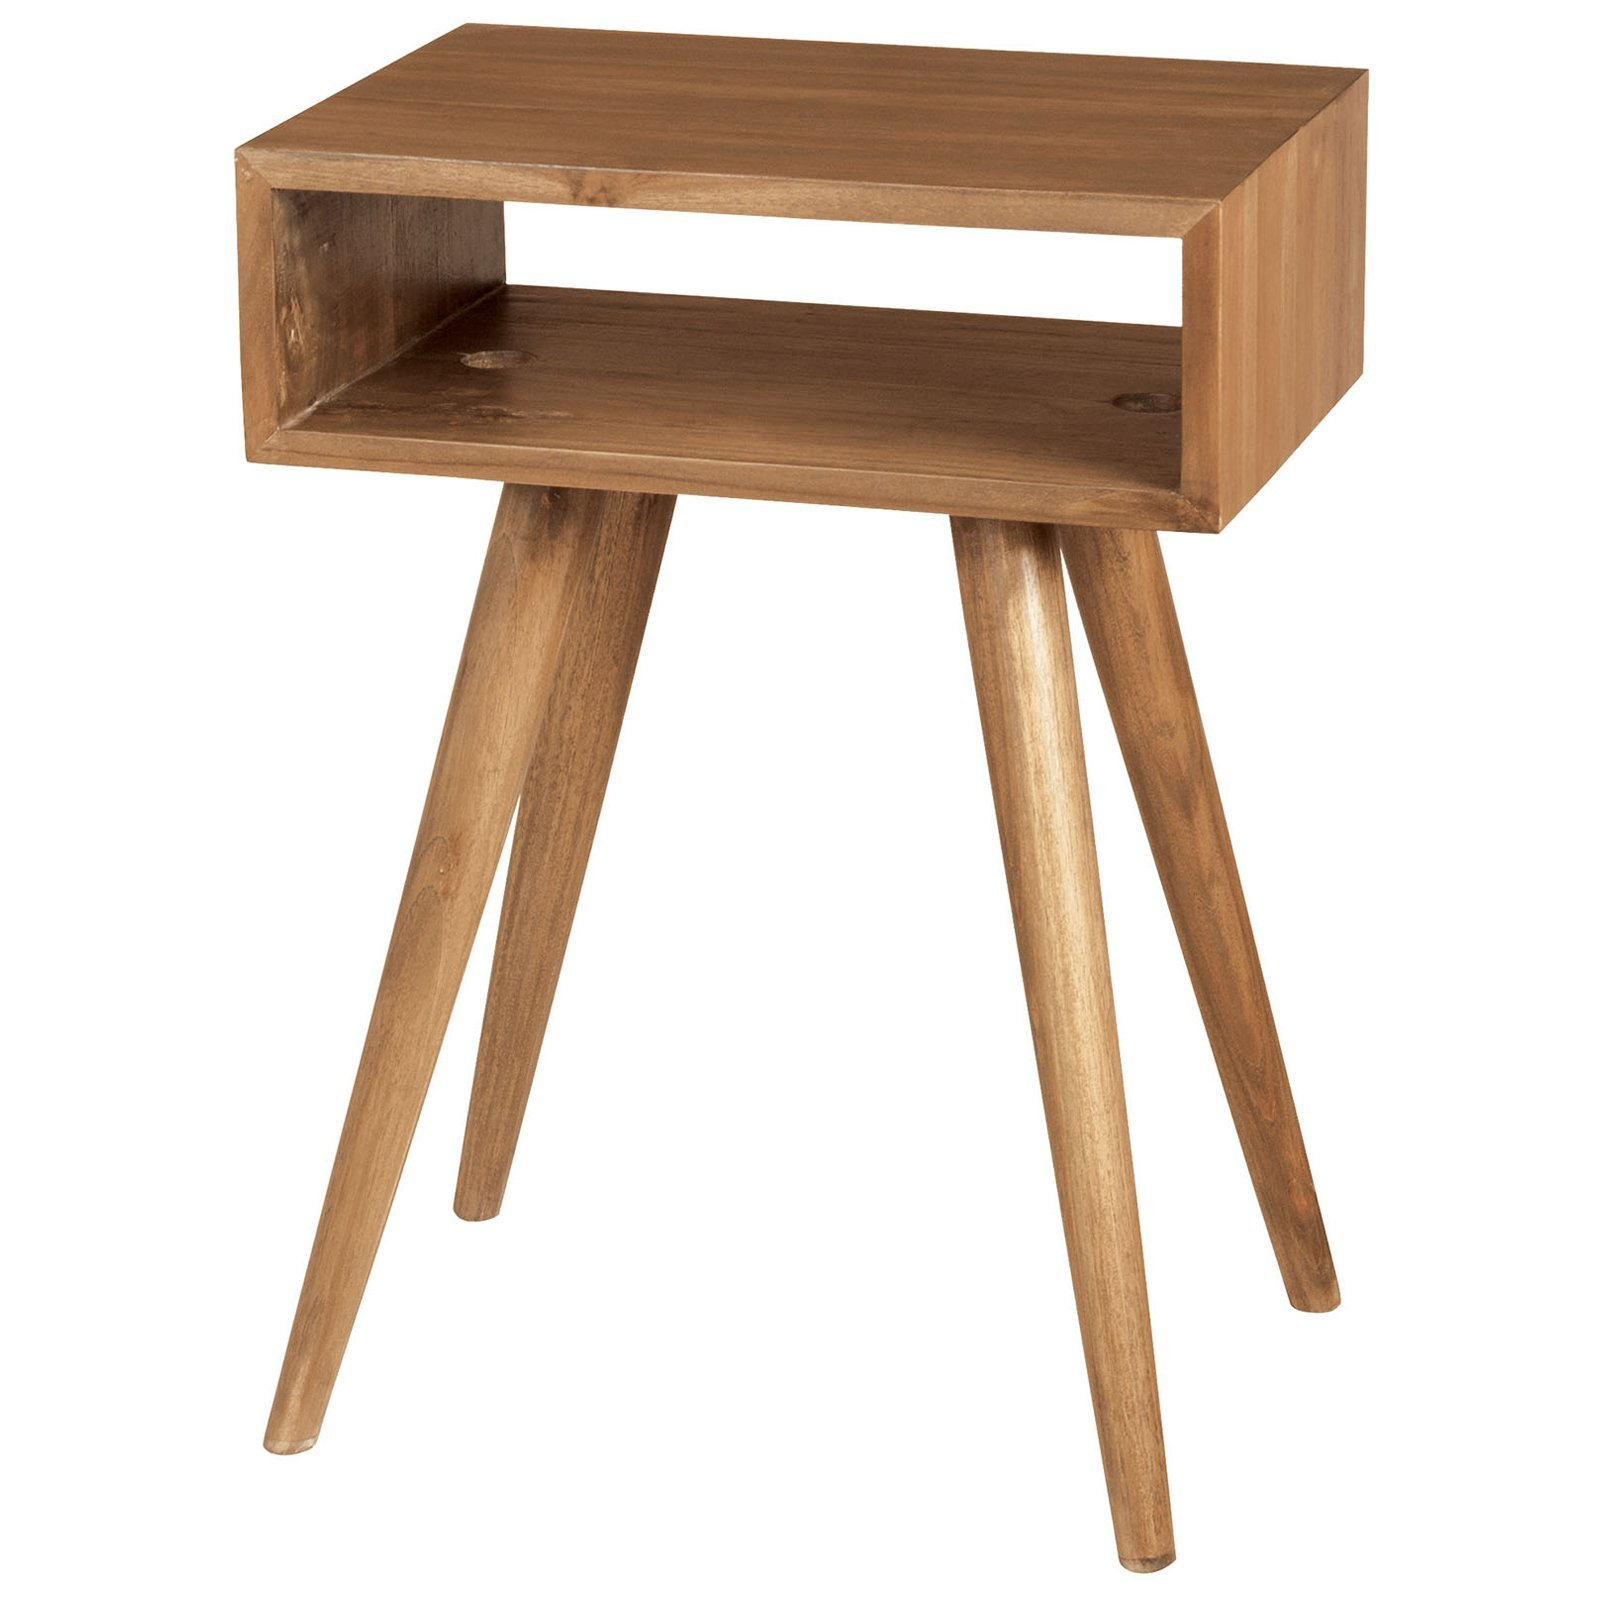 teak open box side table accent tables euro oil wood black contemporary lamps pier furniture clearance corner hall pottery barn rain drum hand painted chest drawers umbrella stand